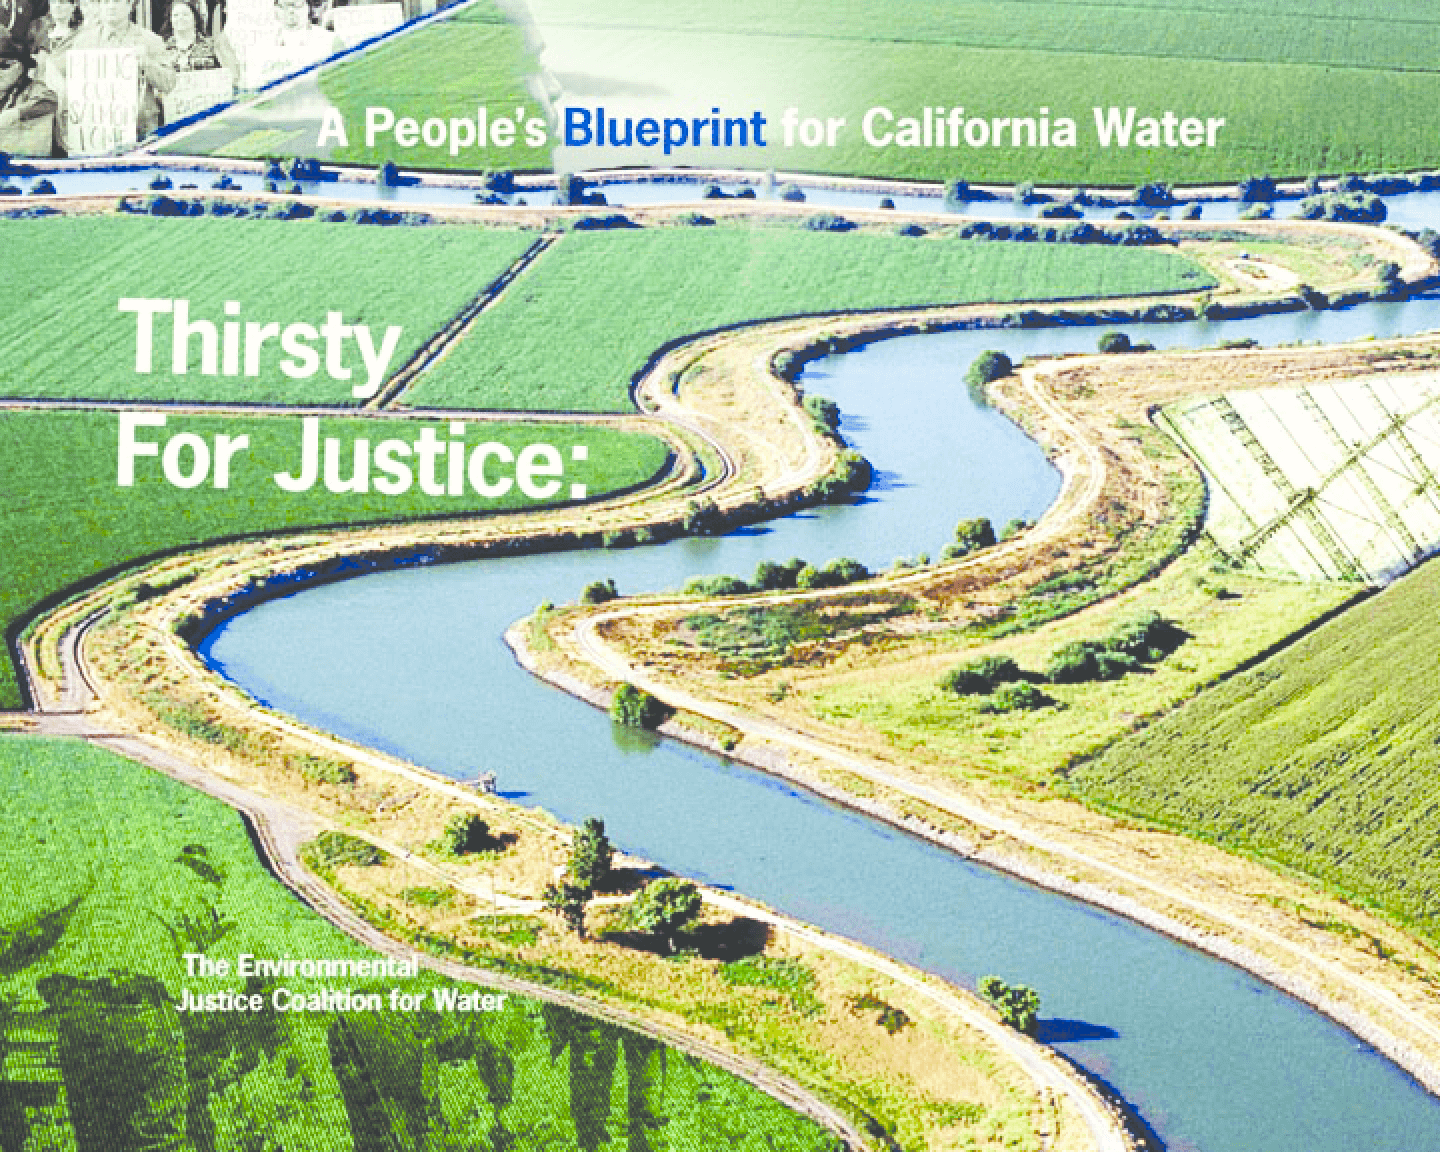 Thirsty for Justice: A People's Blueprint for California Water